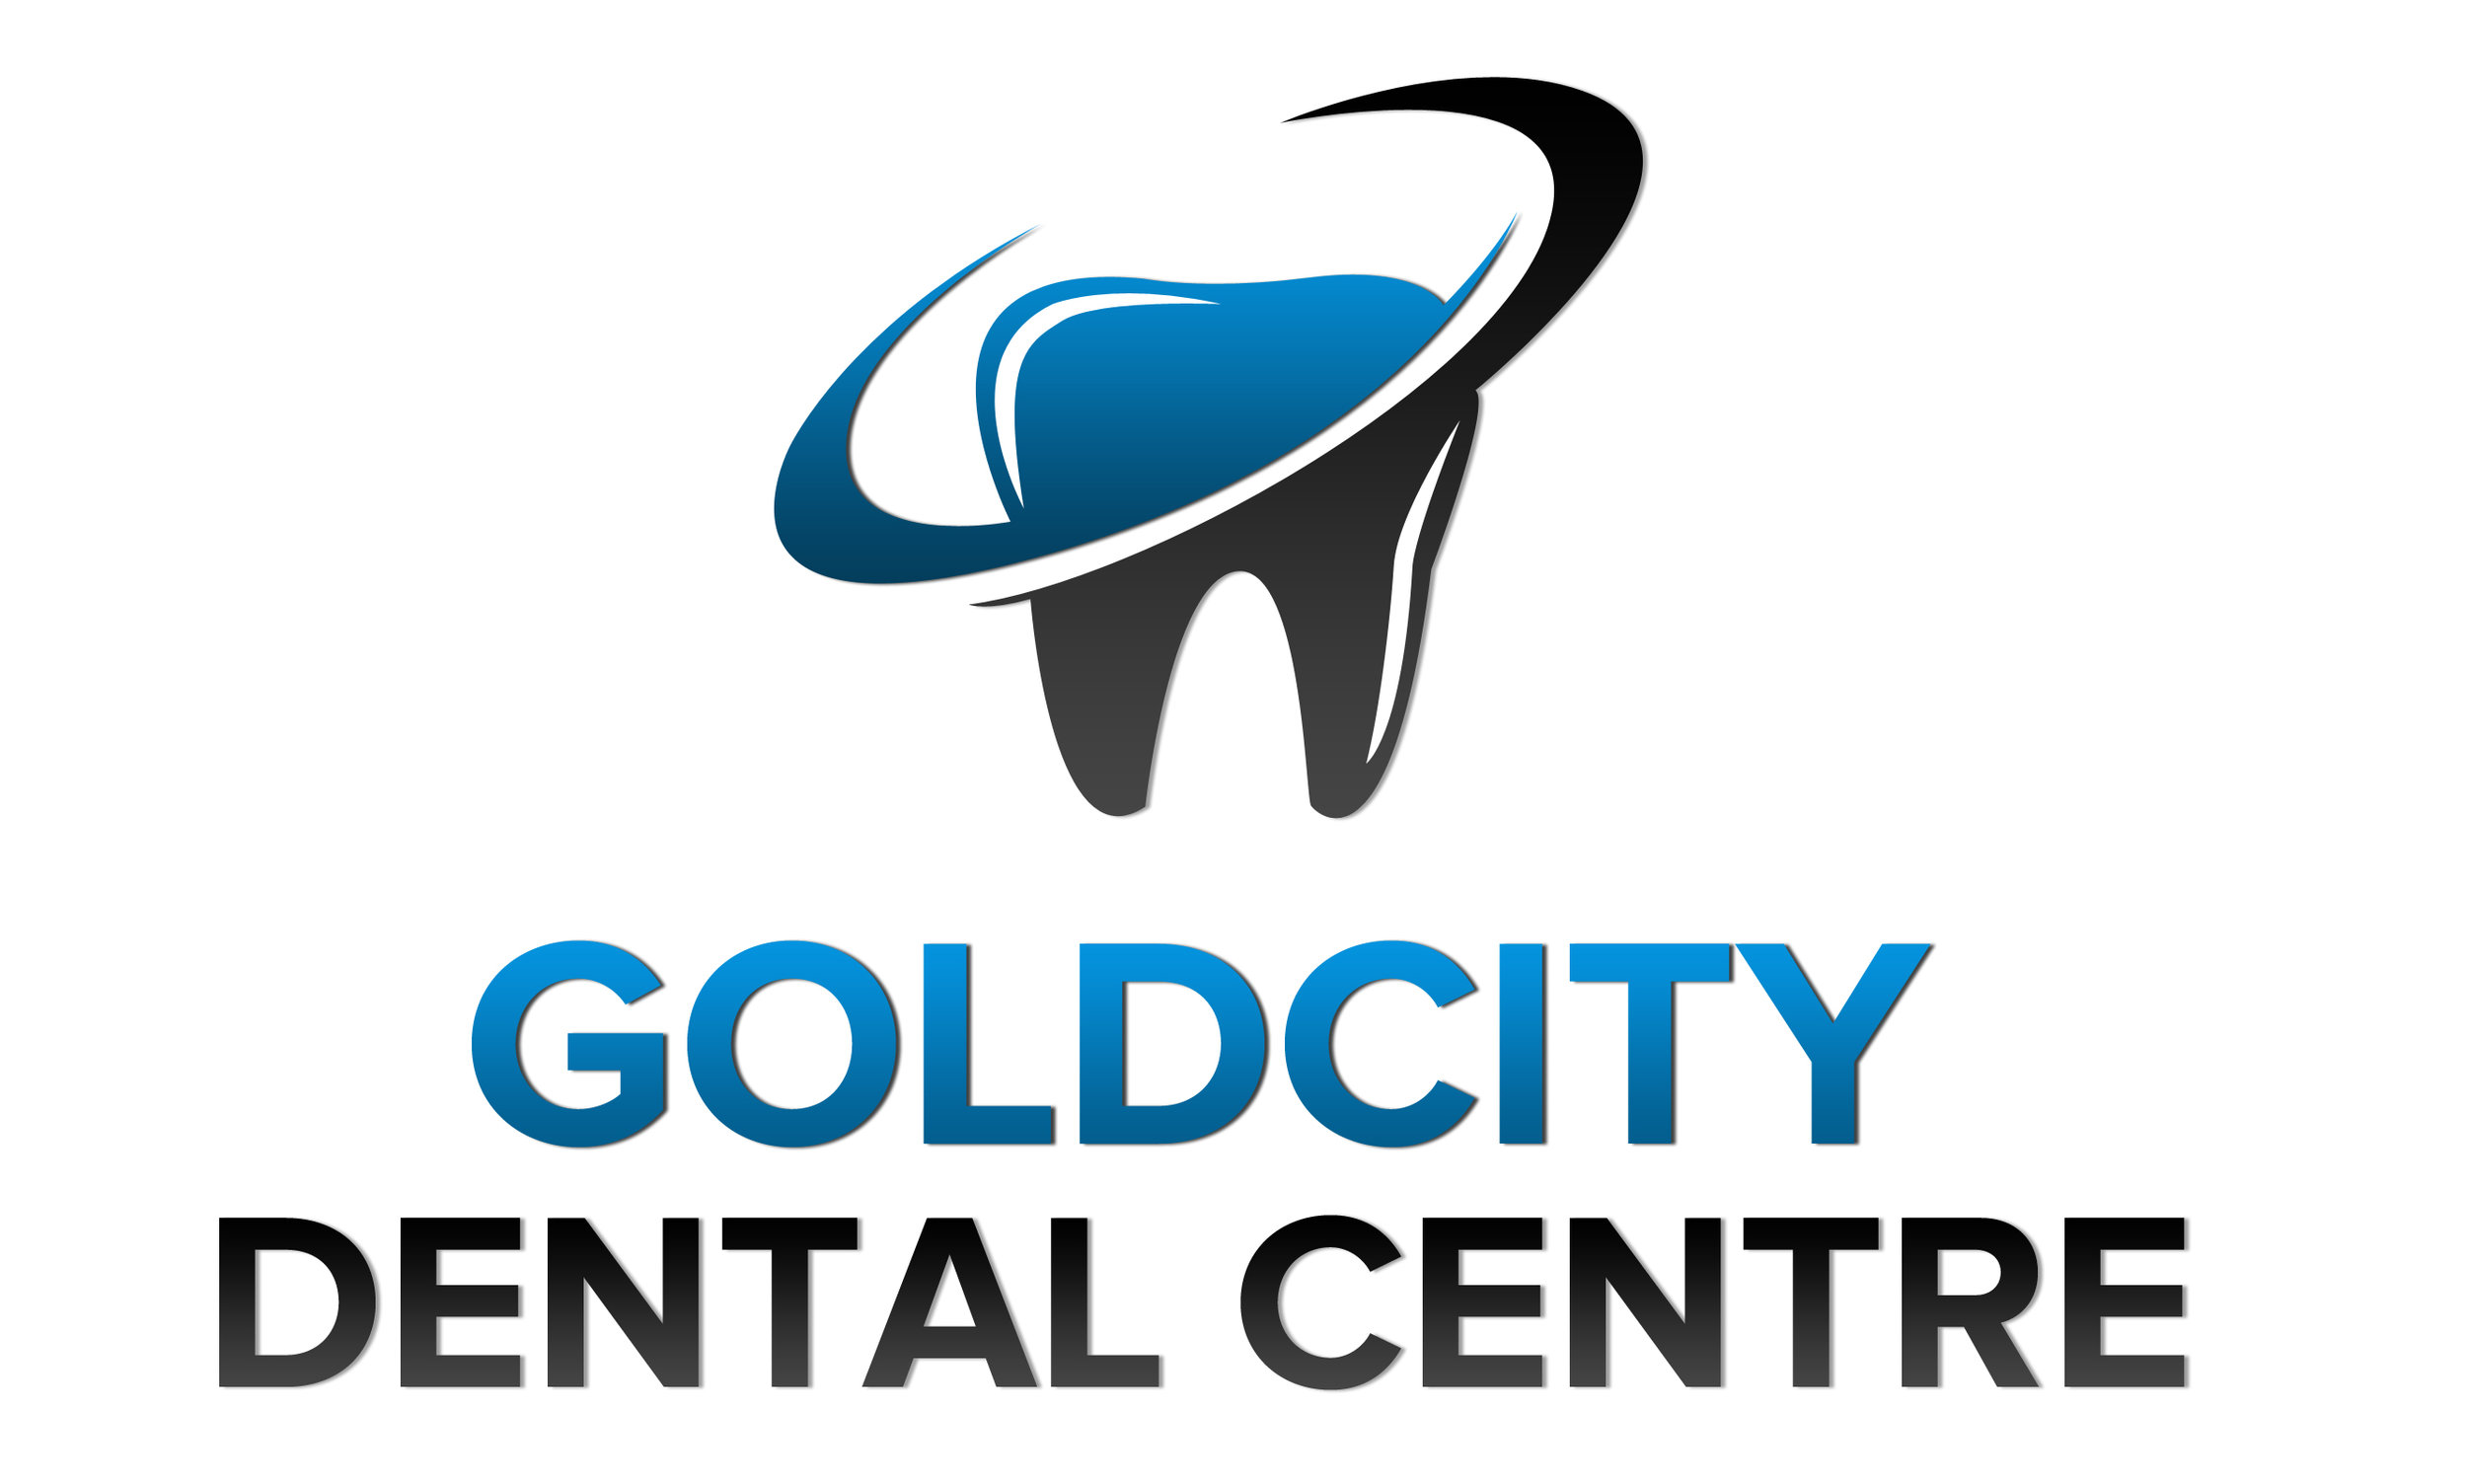 Gold city dental - Our mission is to provide patients with affordable, comfortable, quality dental services. Our goal is to improve patient's health and quality of life through a gentle, caring, supportive environment.Our central focus is to assist our patients to achieve customised, comprehensive treatment through patient education, empowering patients with knowledge and understanding of their needs.Visit their website.